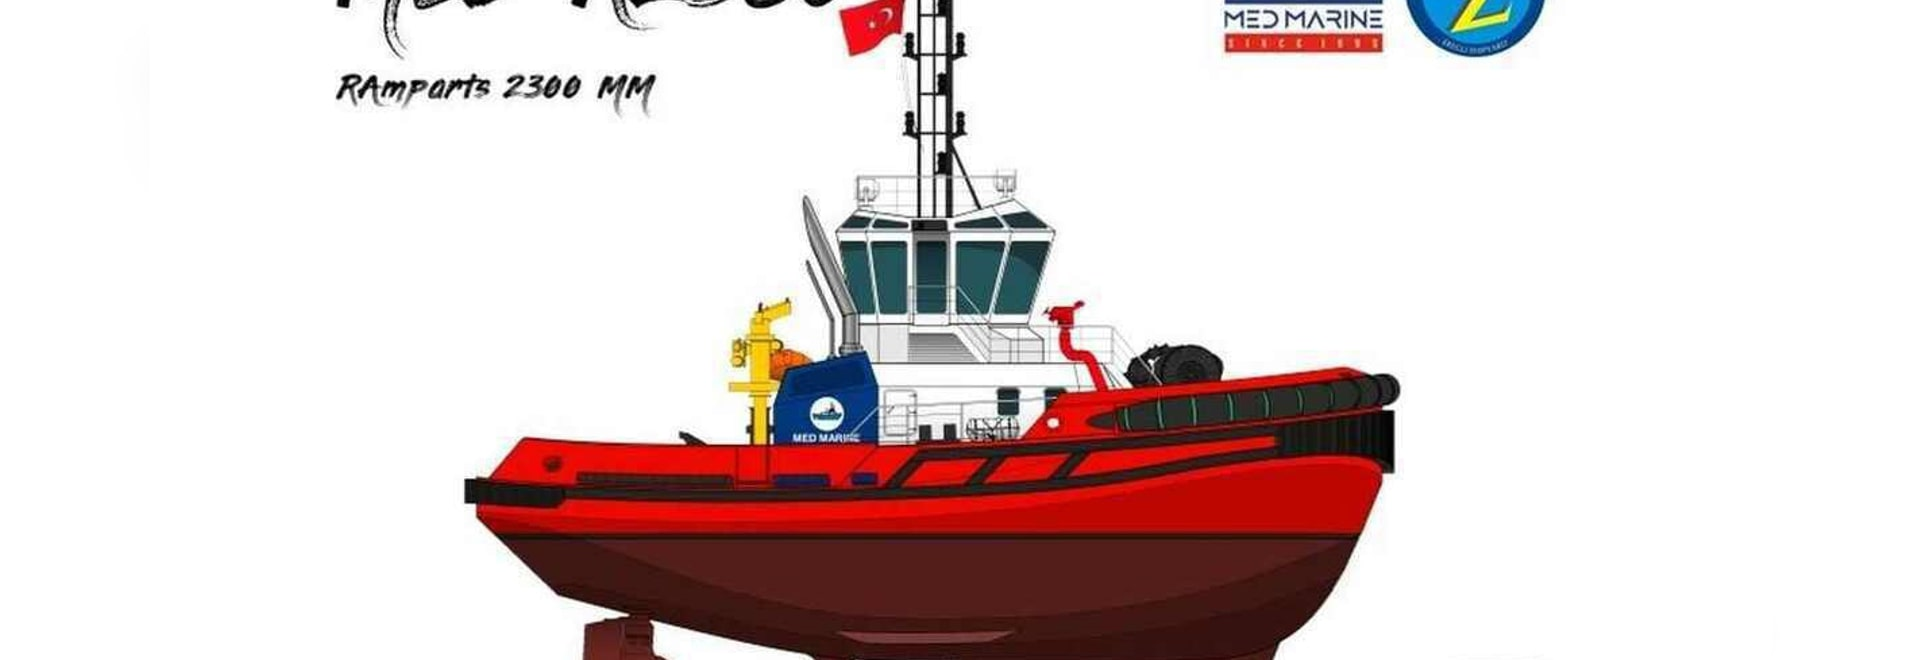 Design for a new tug Med Marine will deliver to Abu Dhabi Ports in November